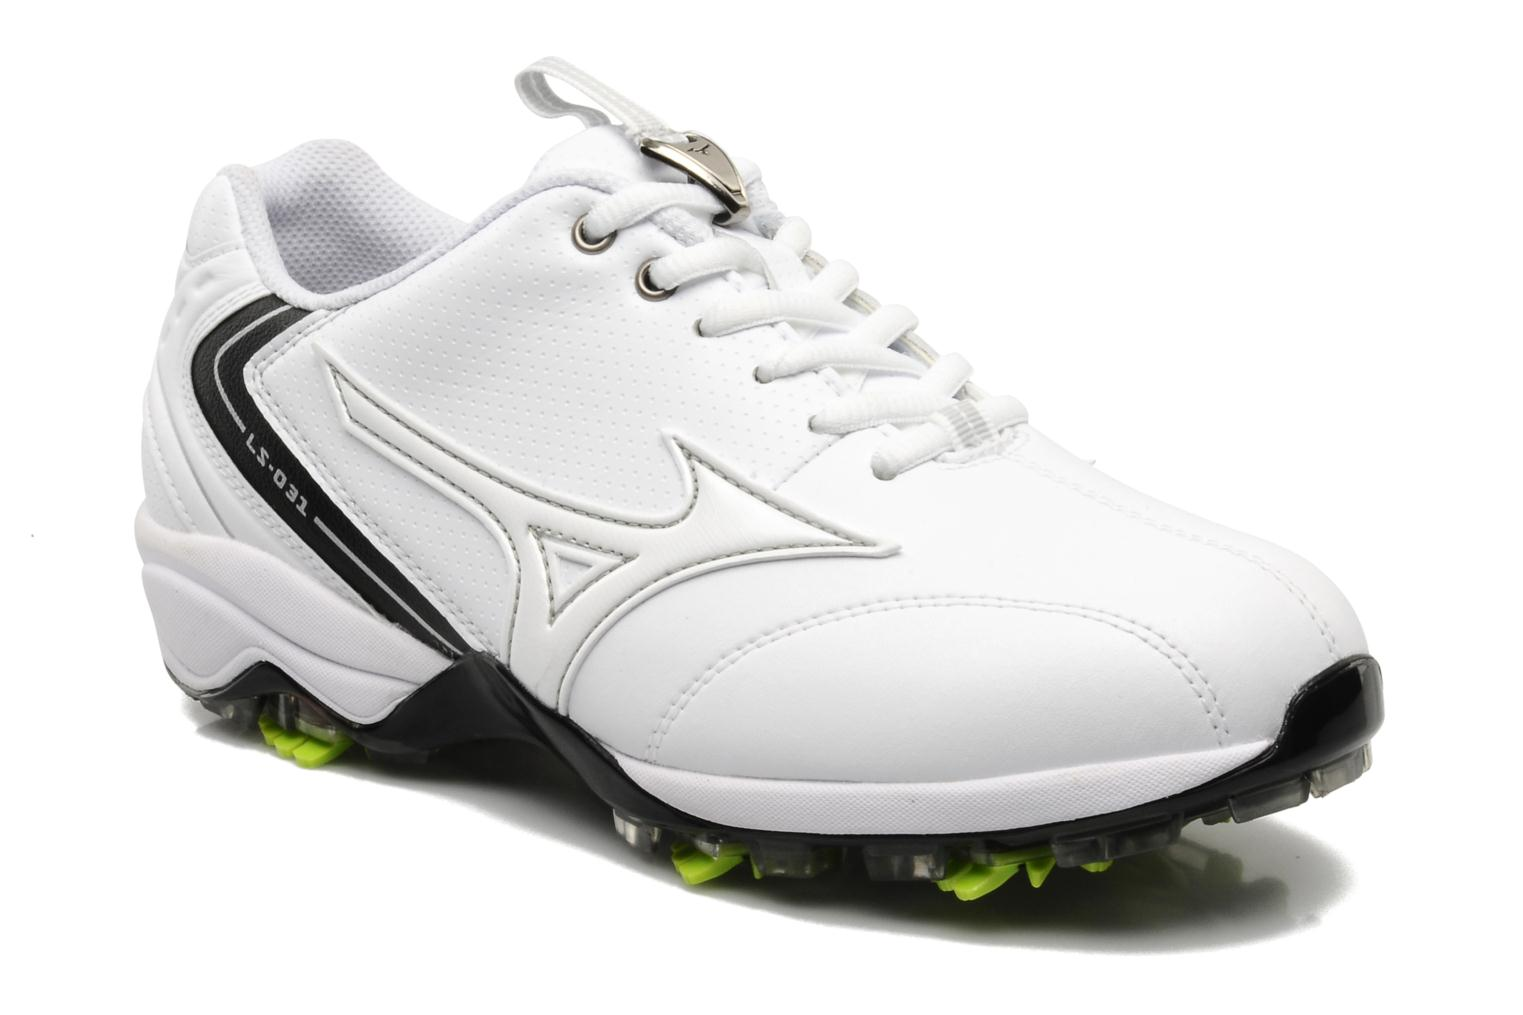 Mizuno light Lady